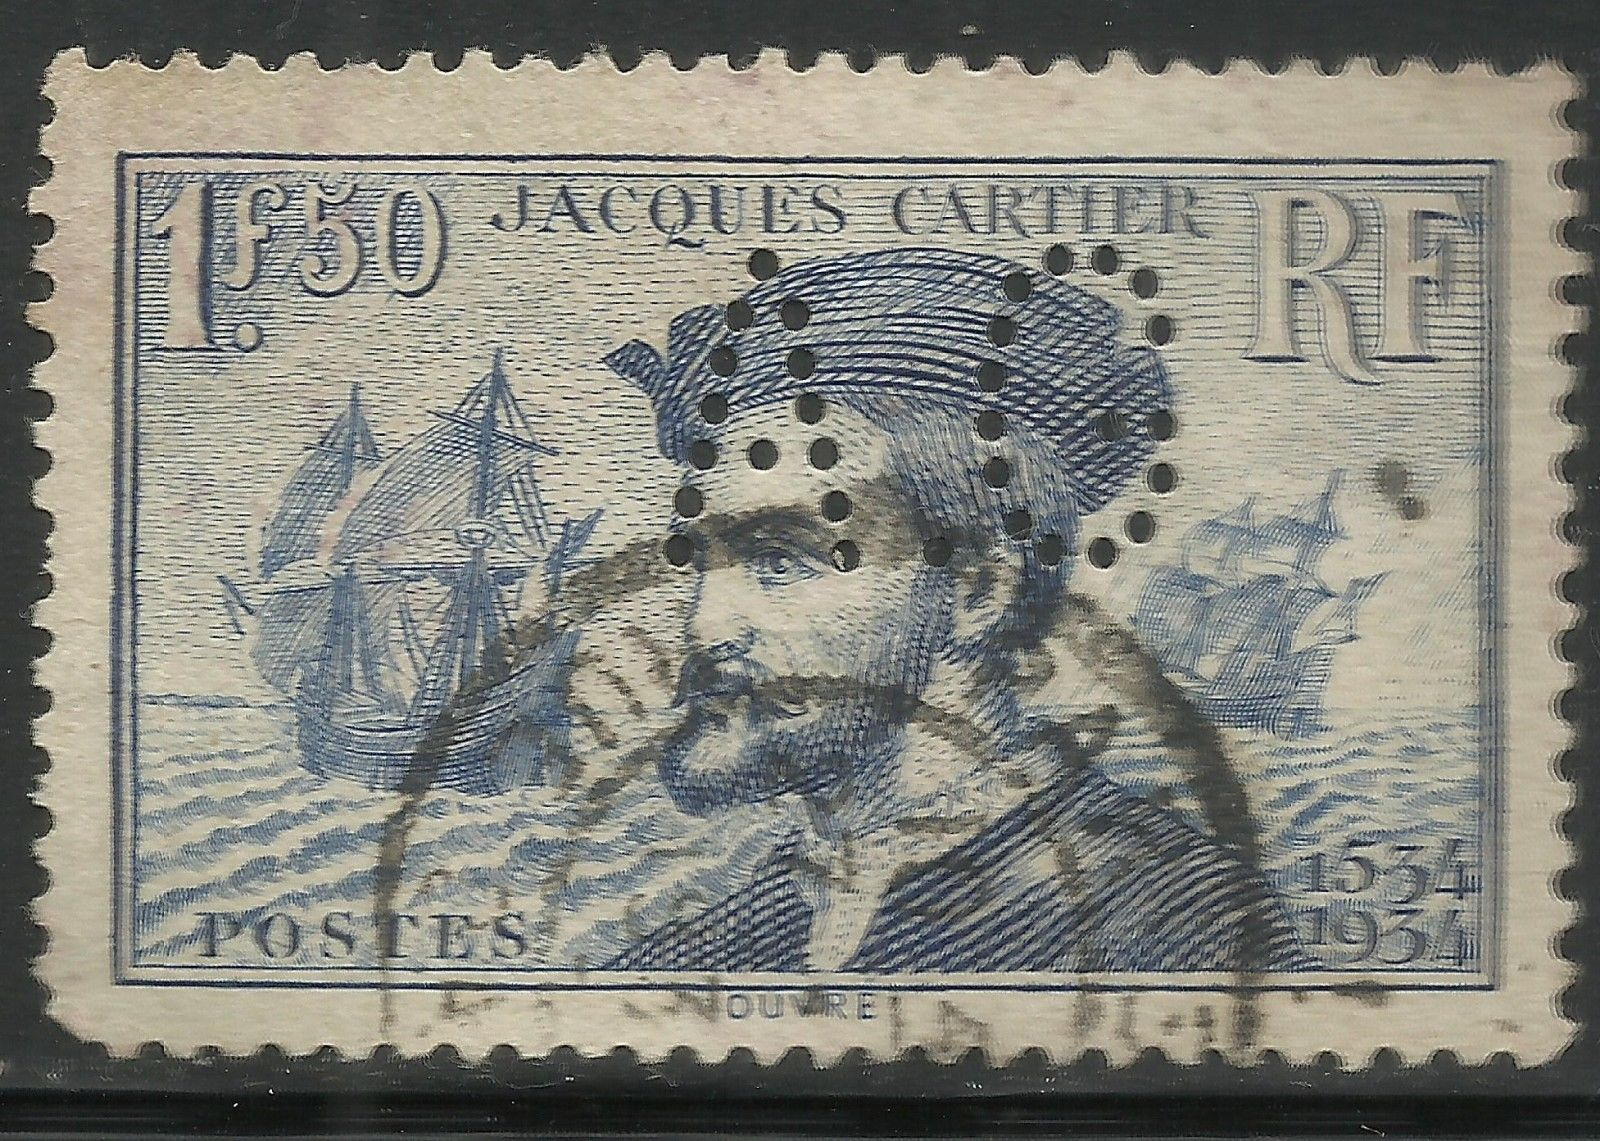 France - Scott #297 (1934) used, perfin